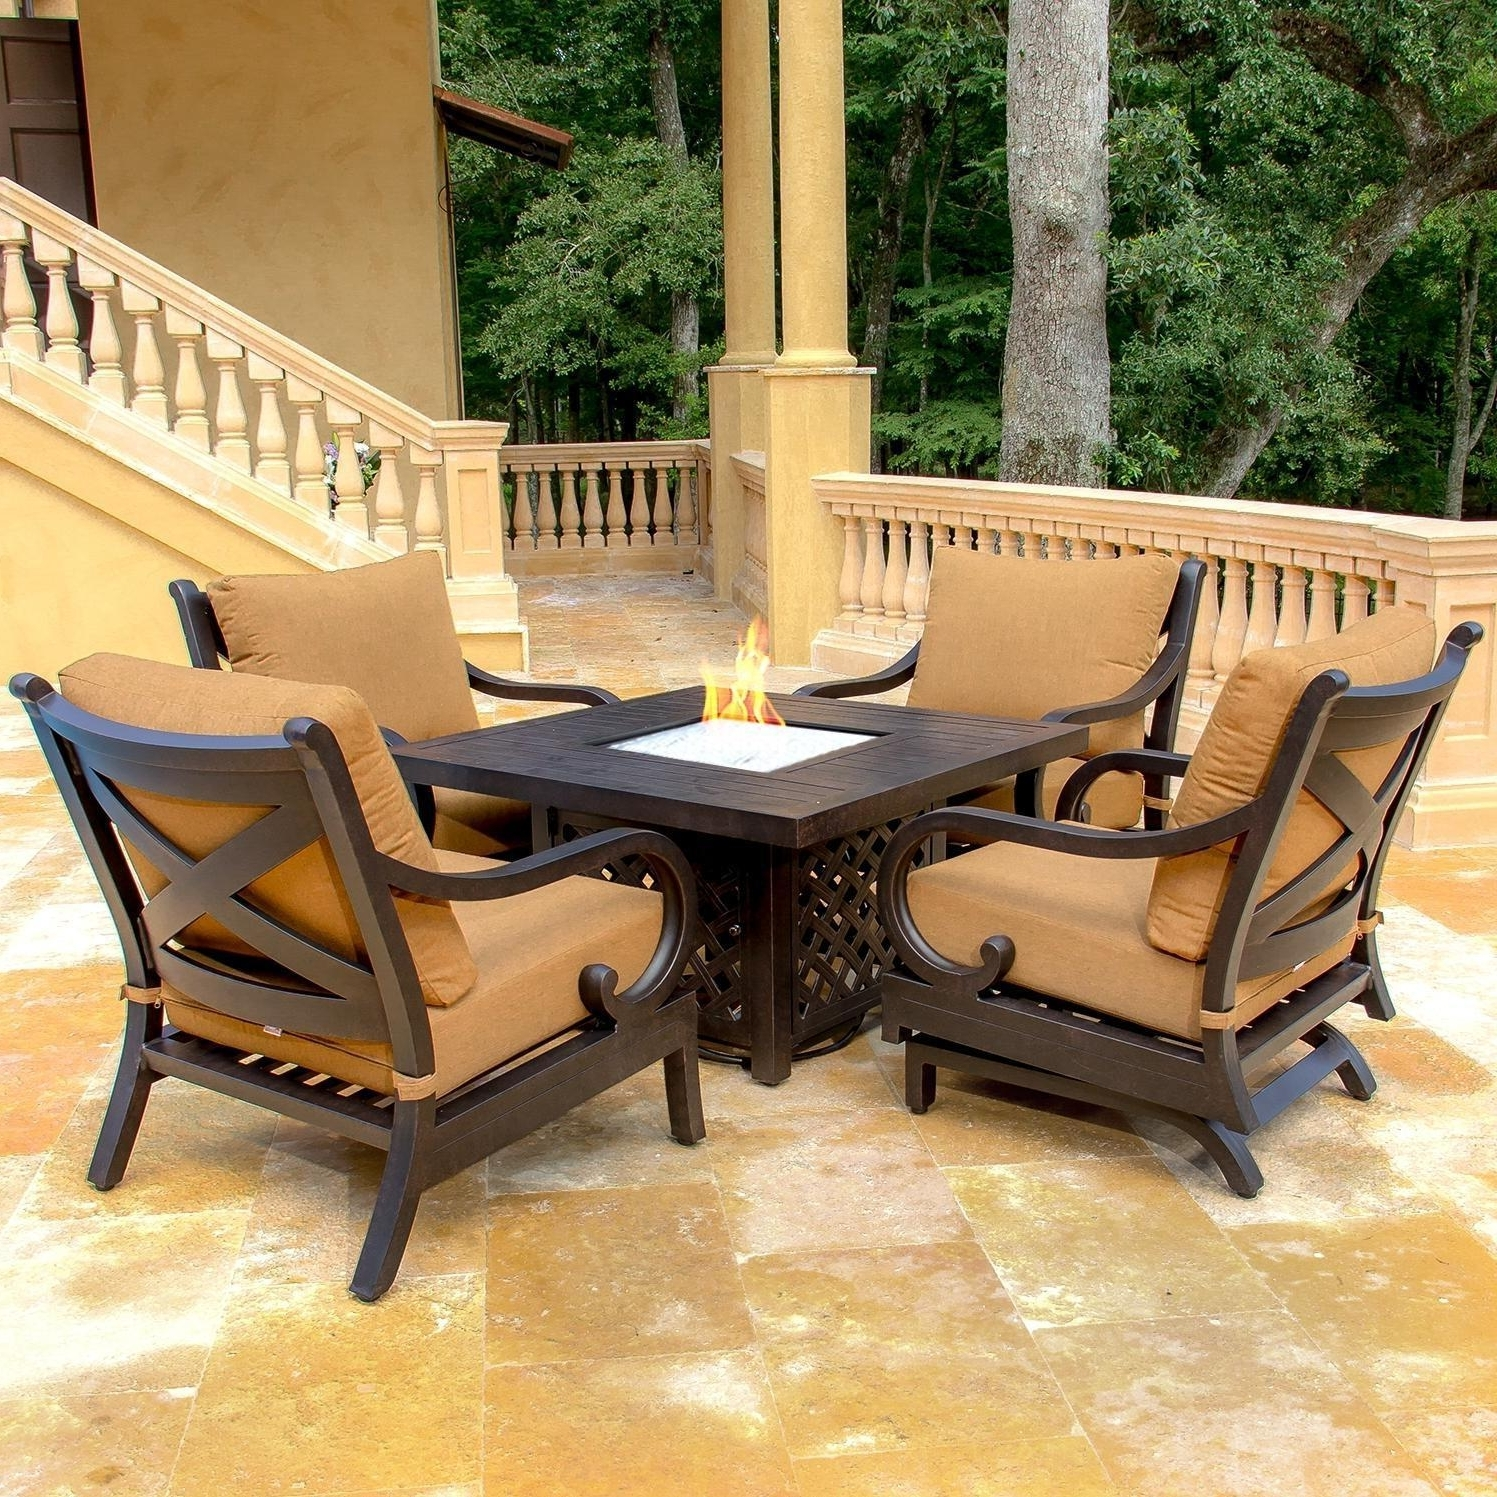 Patio Conversation Sets Without Cushions Within Well Known Awesome Collection Of Fortable Patio Furniture Home Simple Patio (View 14 of 20)